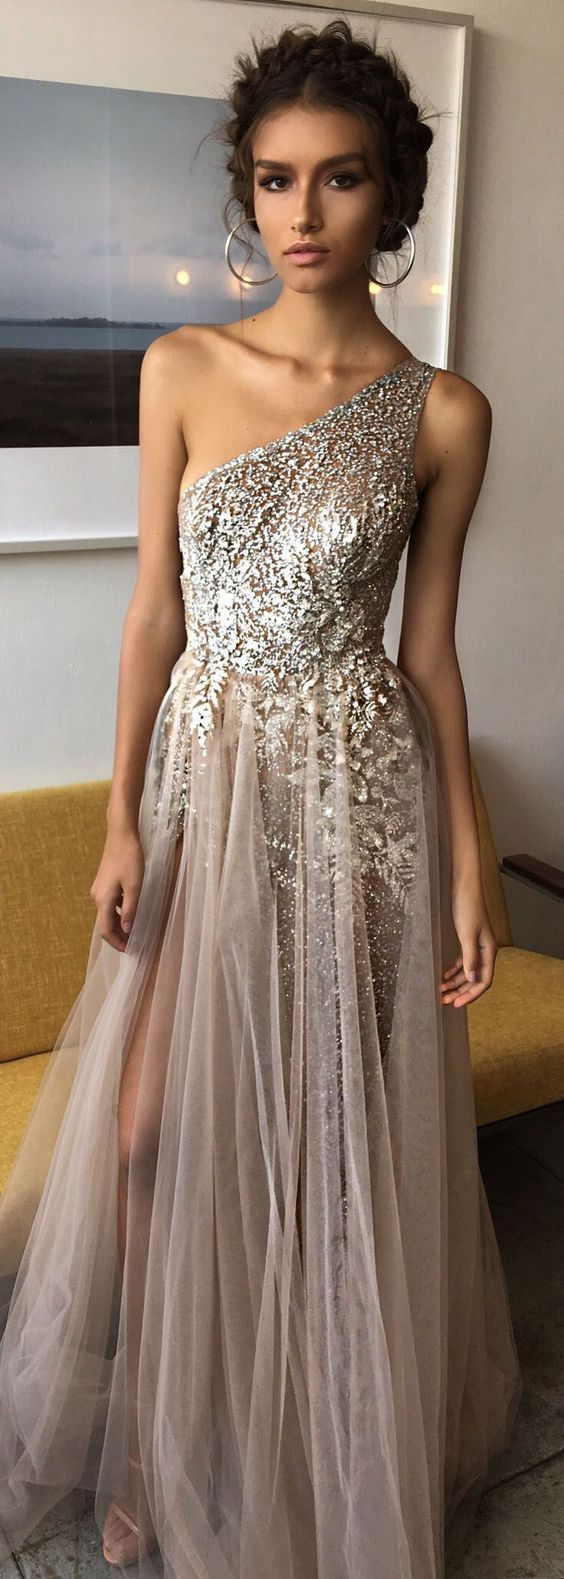 One Shoulder Shinning Side Split Elegant Long Prom Dresses, WG1039 #promdress #prom #longpromdress